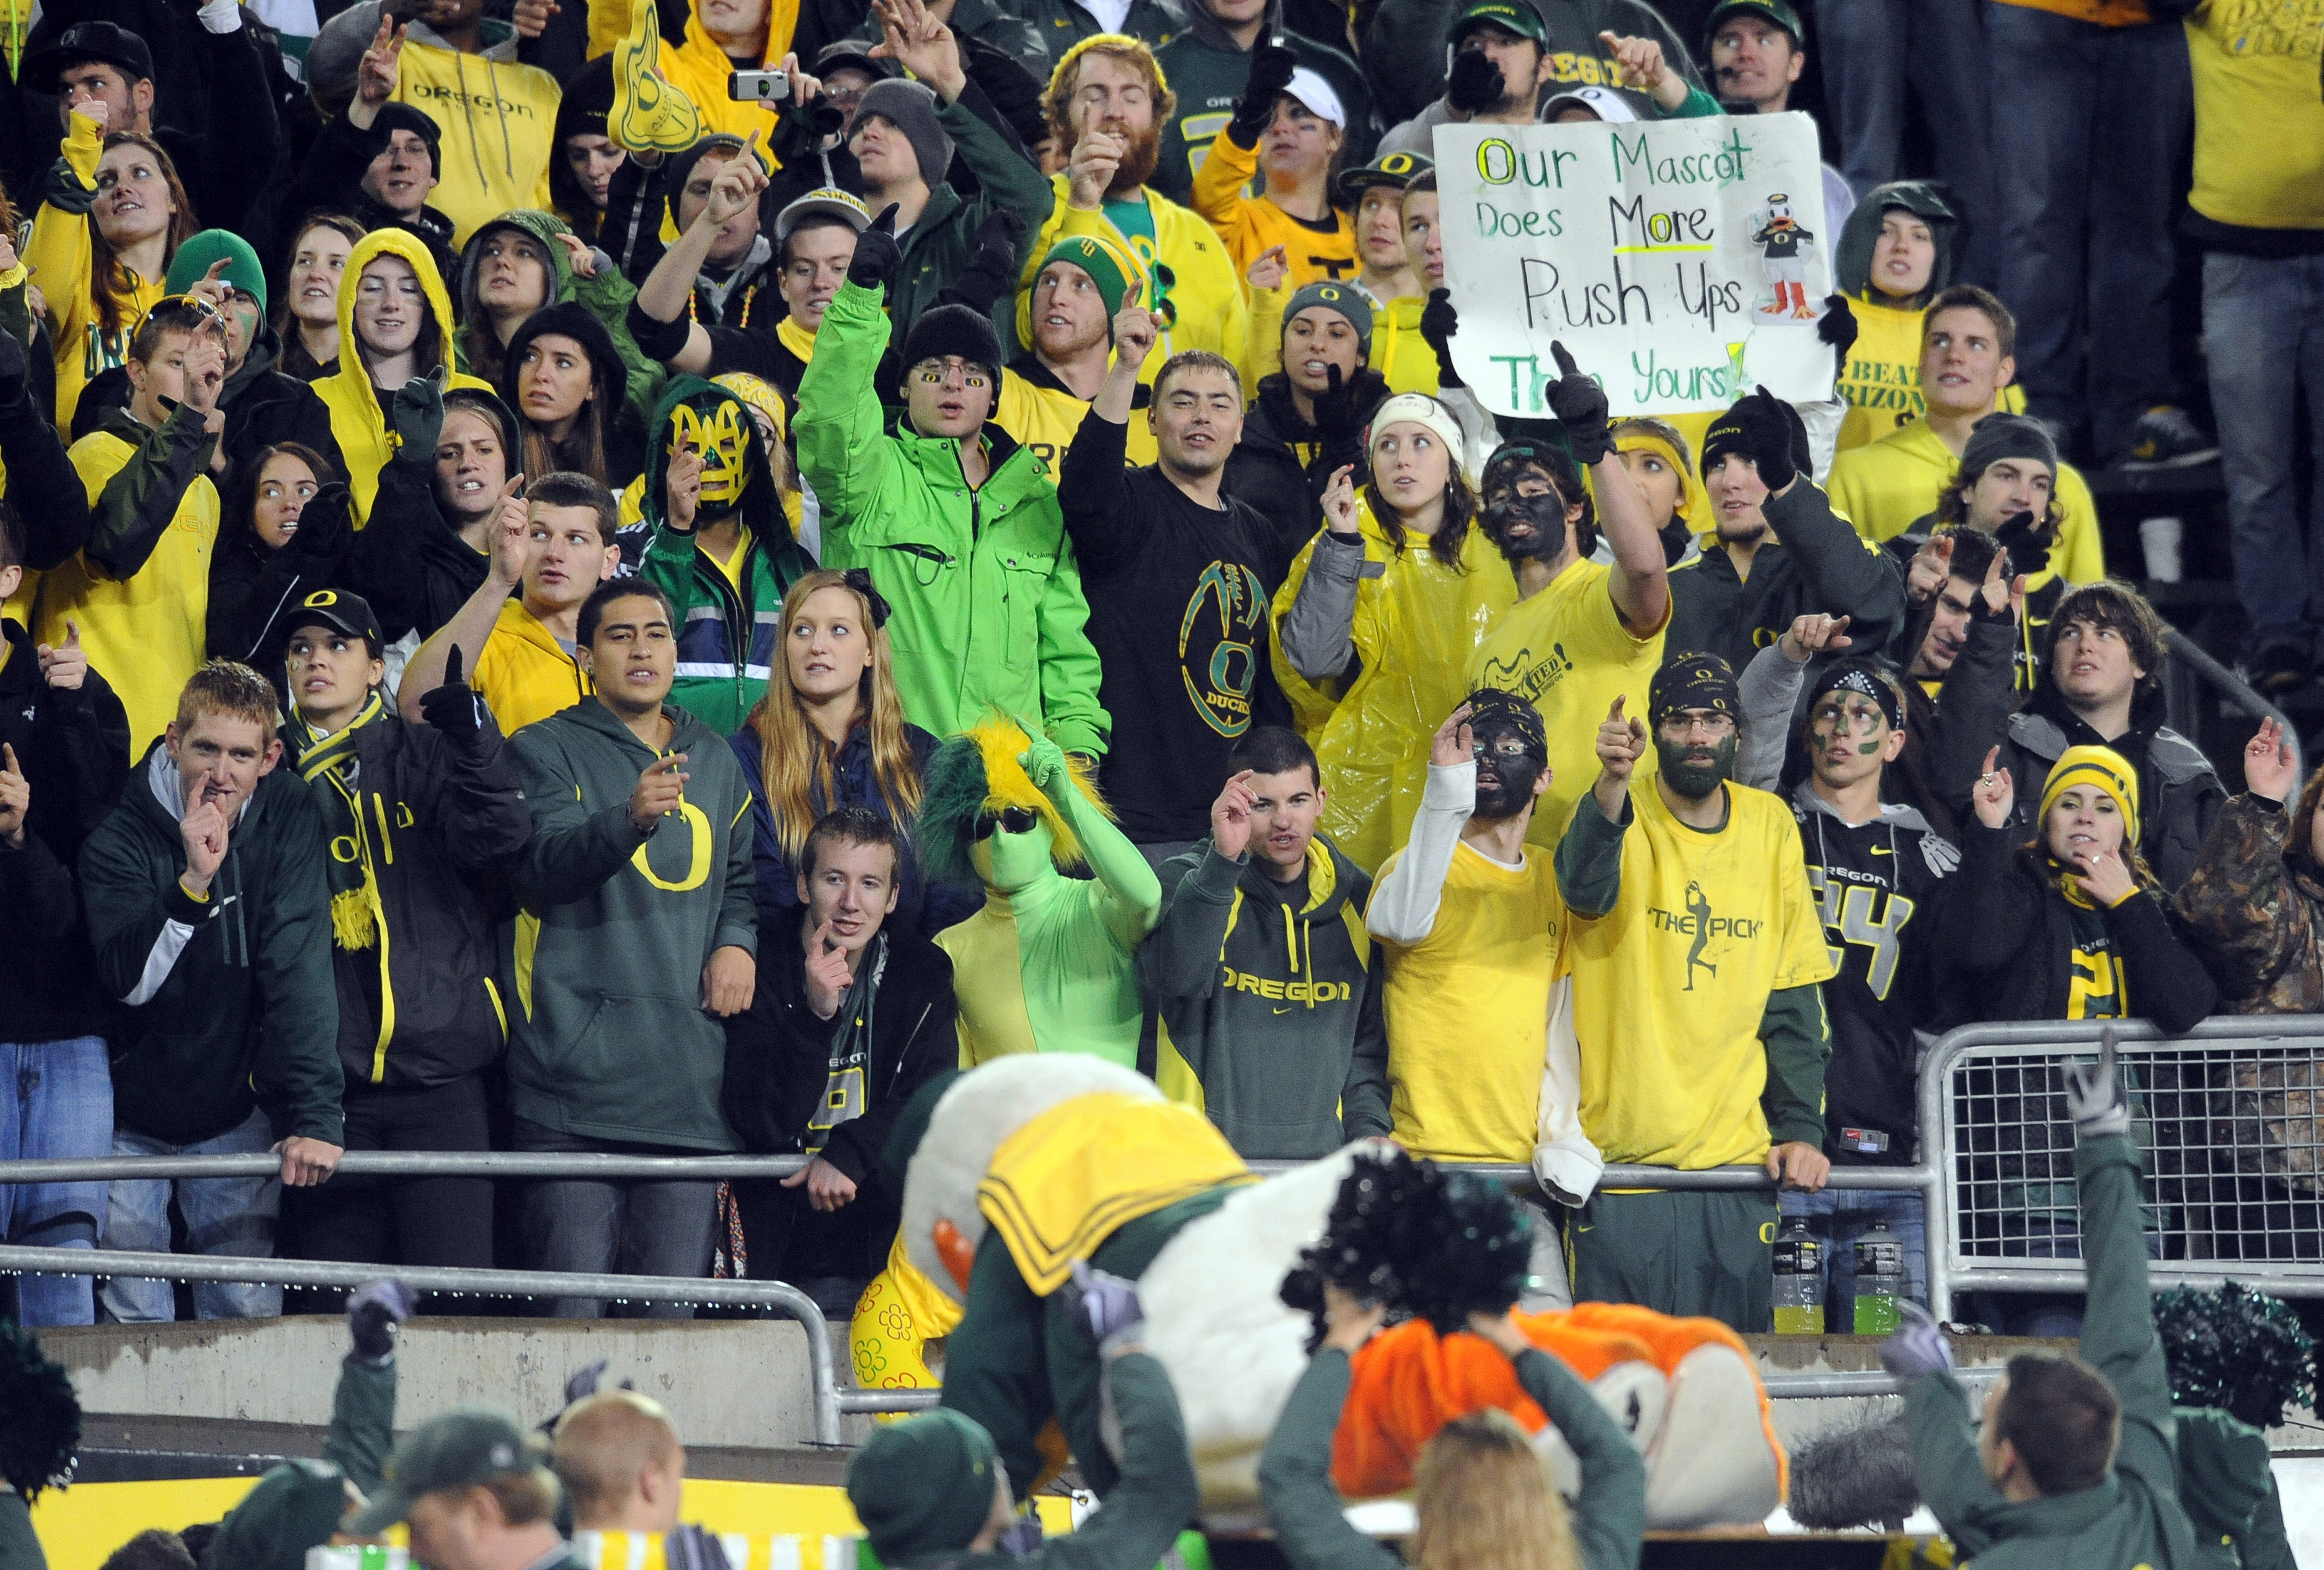 EUGENE, OR - NOVEMBER 26: Oregon Ducks fans cheer as mascot 'Puddles' does push ups in the fourth quarter of the game against the Arizona Wildcats at Autzen Stadium on November 26, 2010 in Eugene, Oregon. The Ducks won the game 48-29. (Photo by Steve Dyke